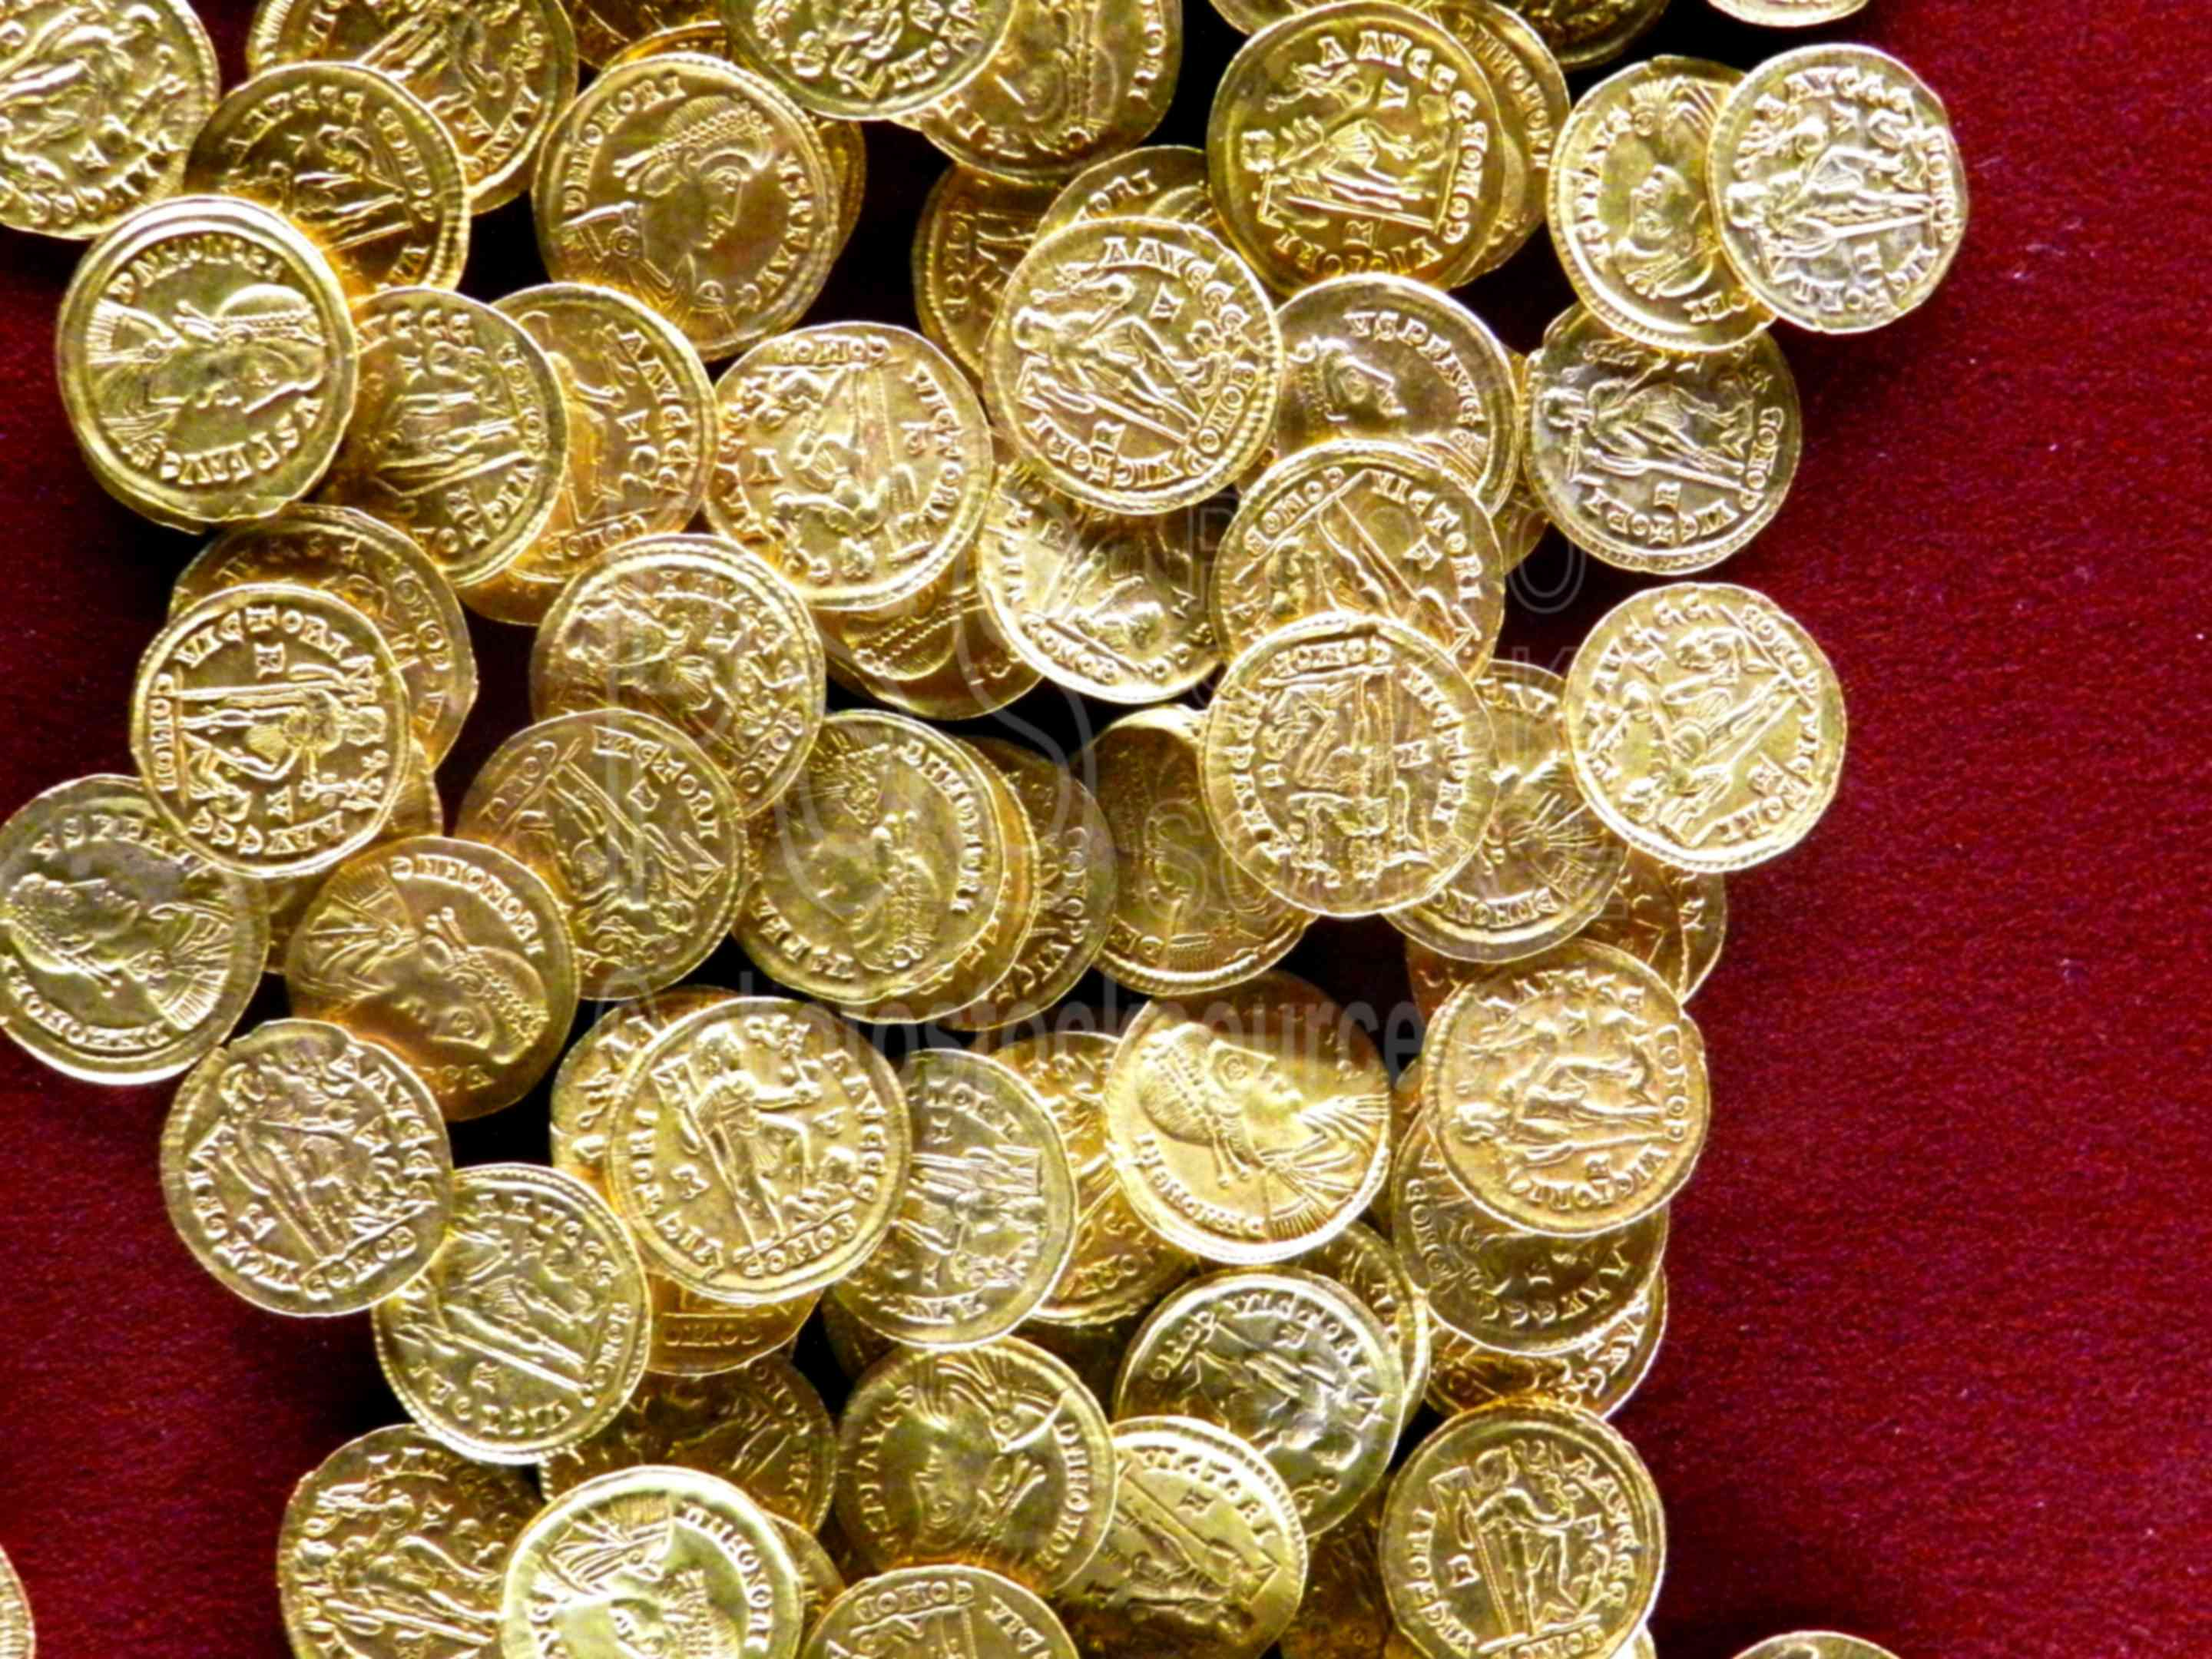 Greek Coins,siracusa,archeology,museum,money,coins,payment,gold